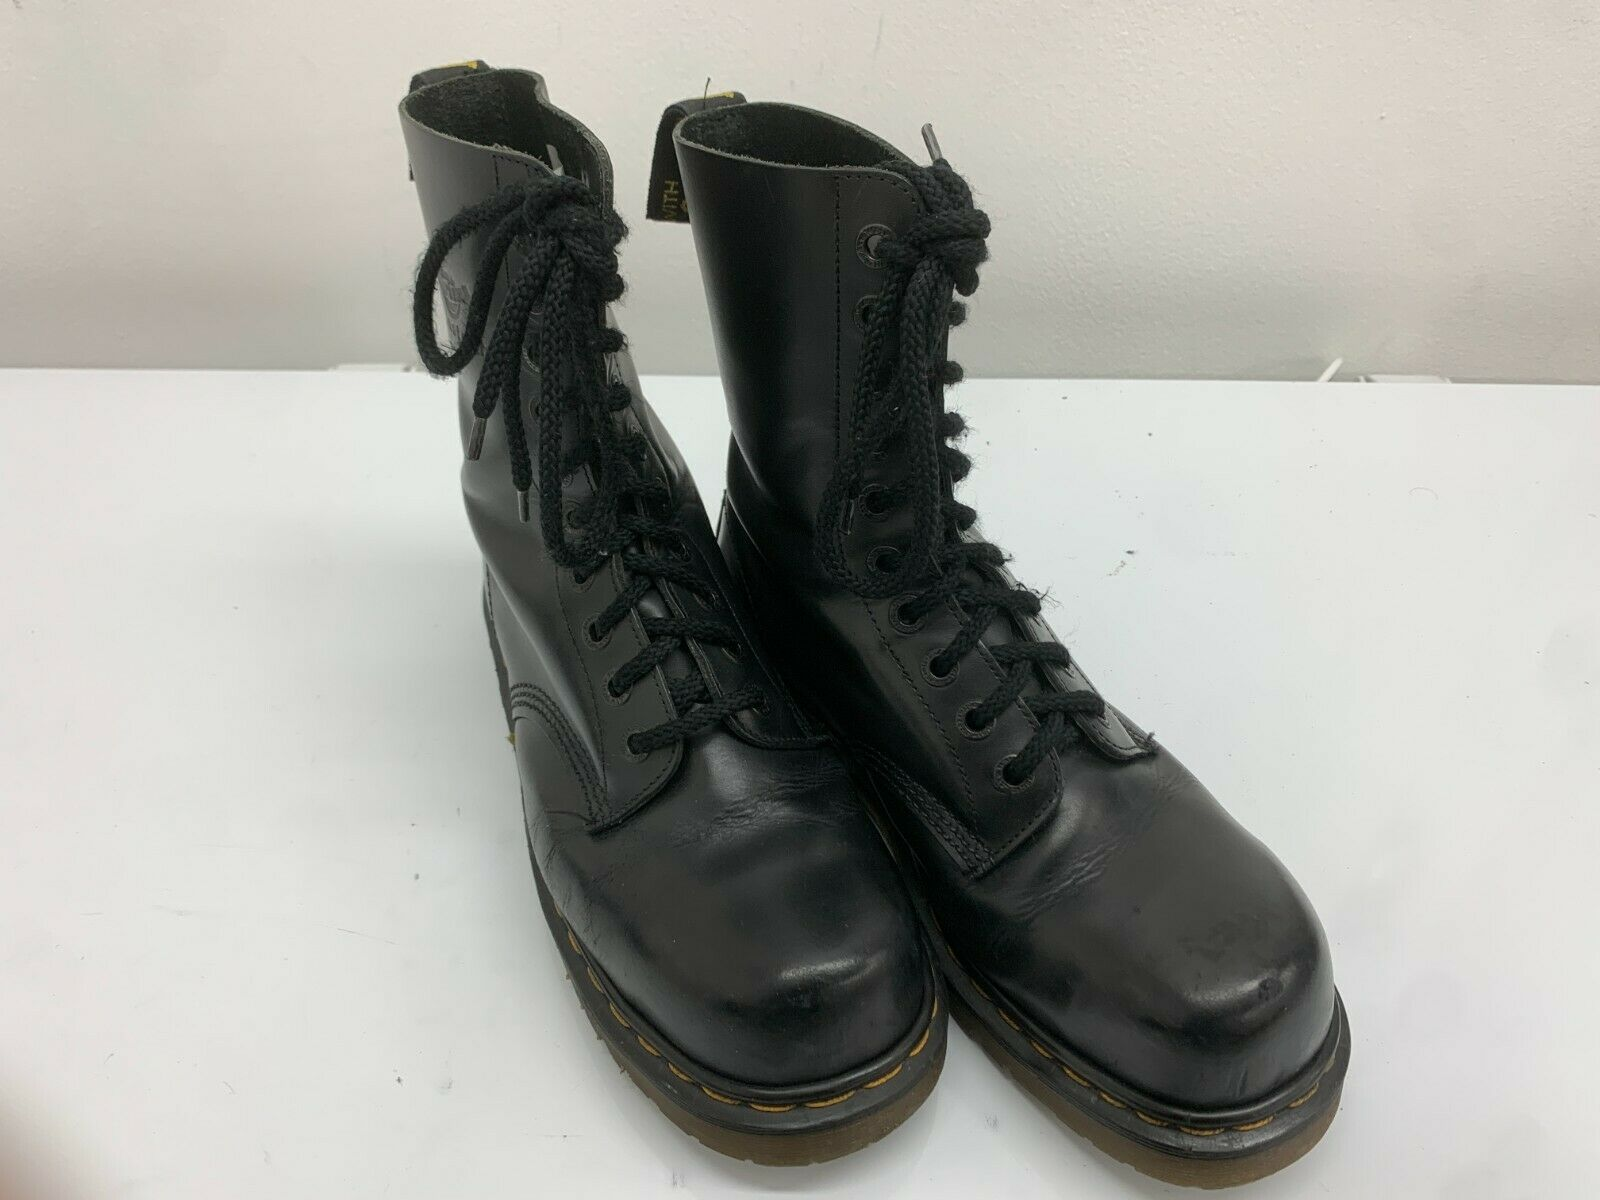 Dr Martens Boots, Black Shiny, Size 8UK,10 Eyelet, Made in England Steel Toe Cap